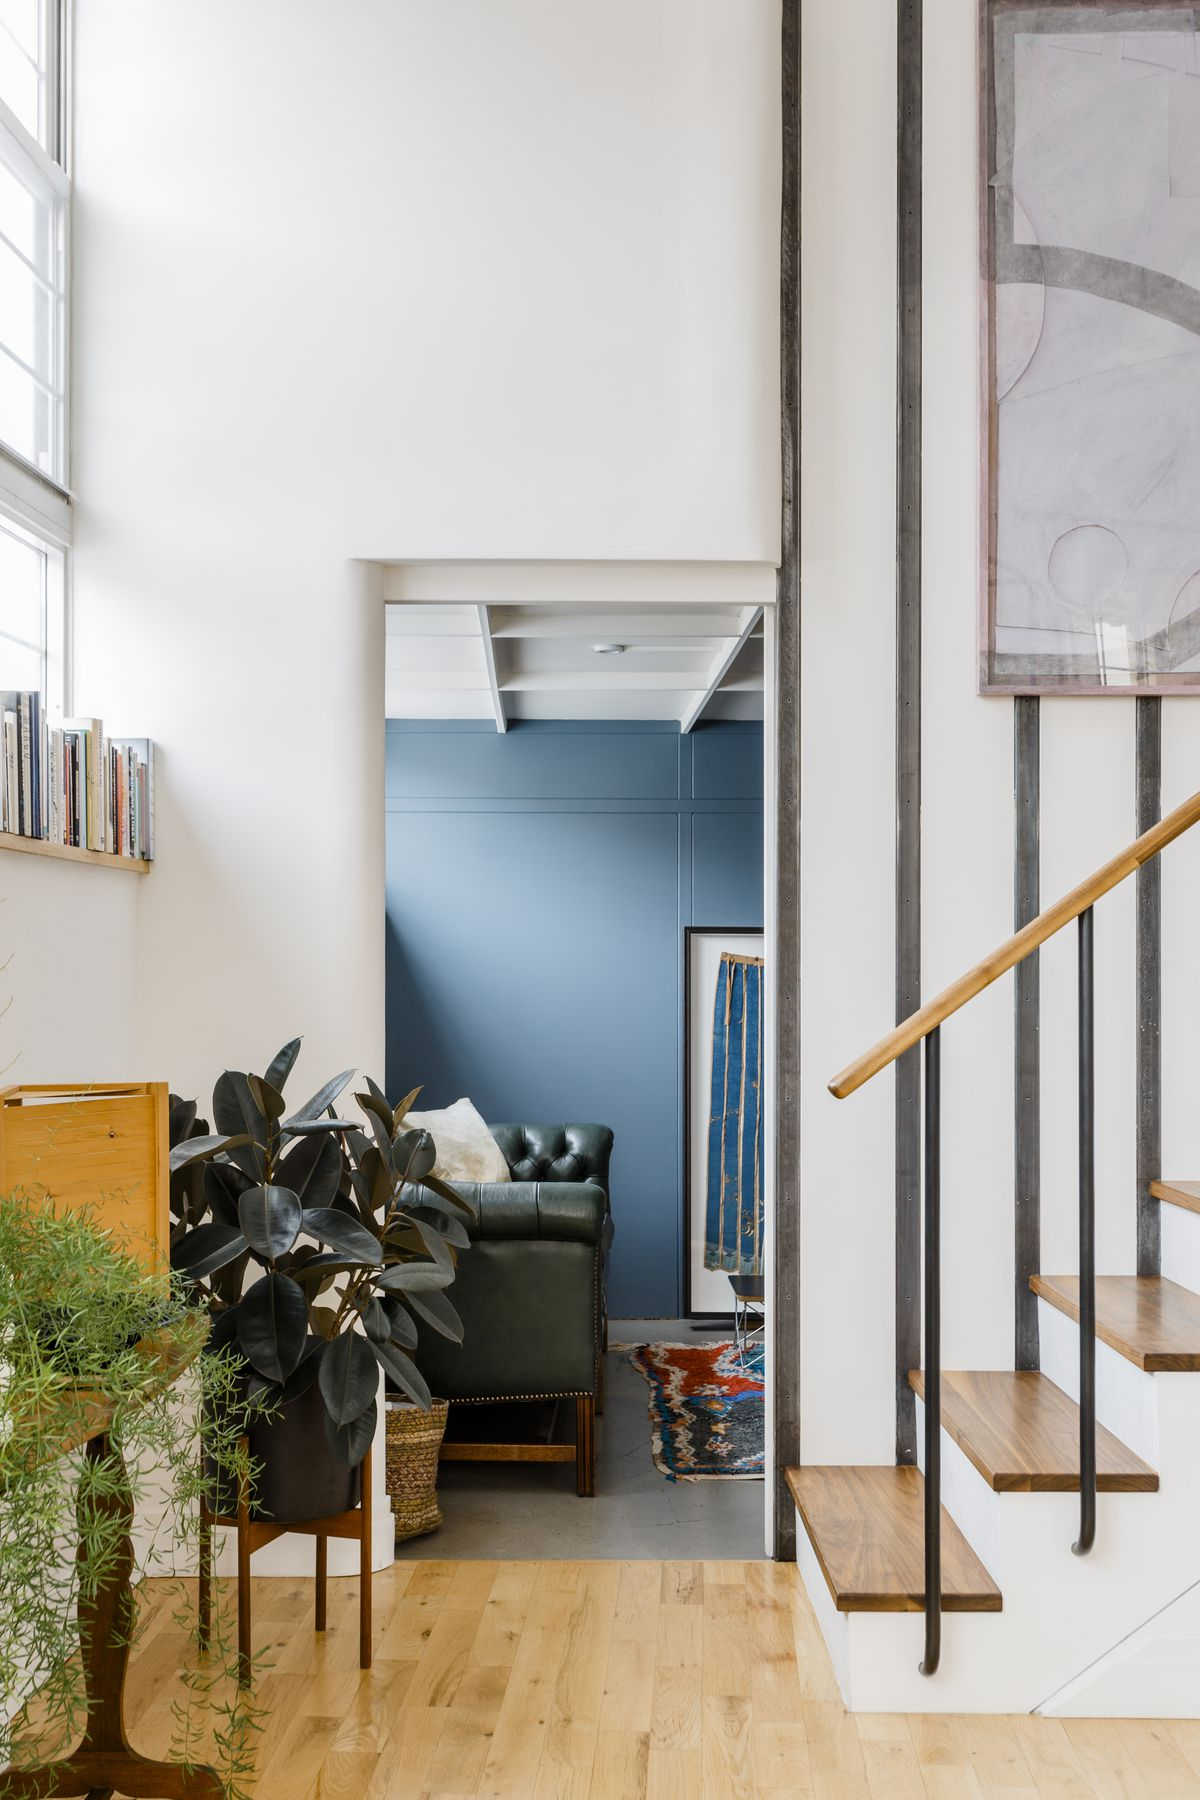 In Bed-Stuy, making a home in a former chocolate factory - Curbed NY